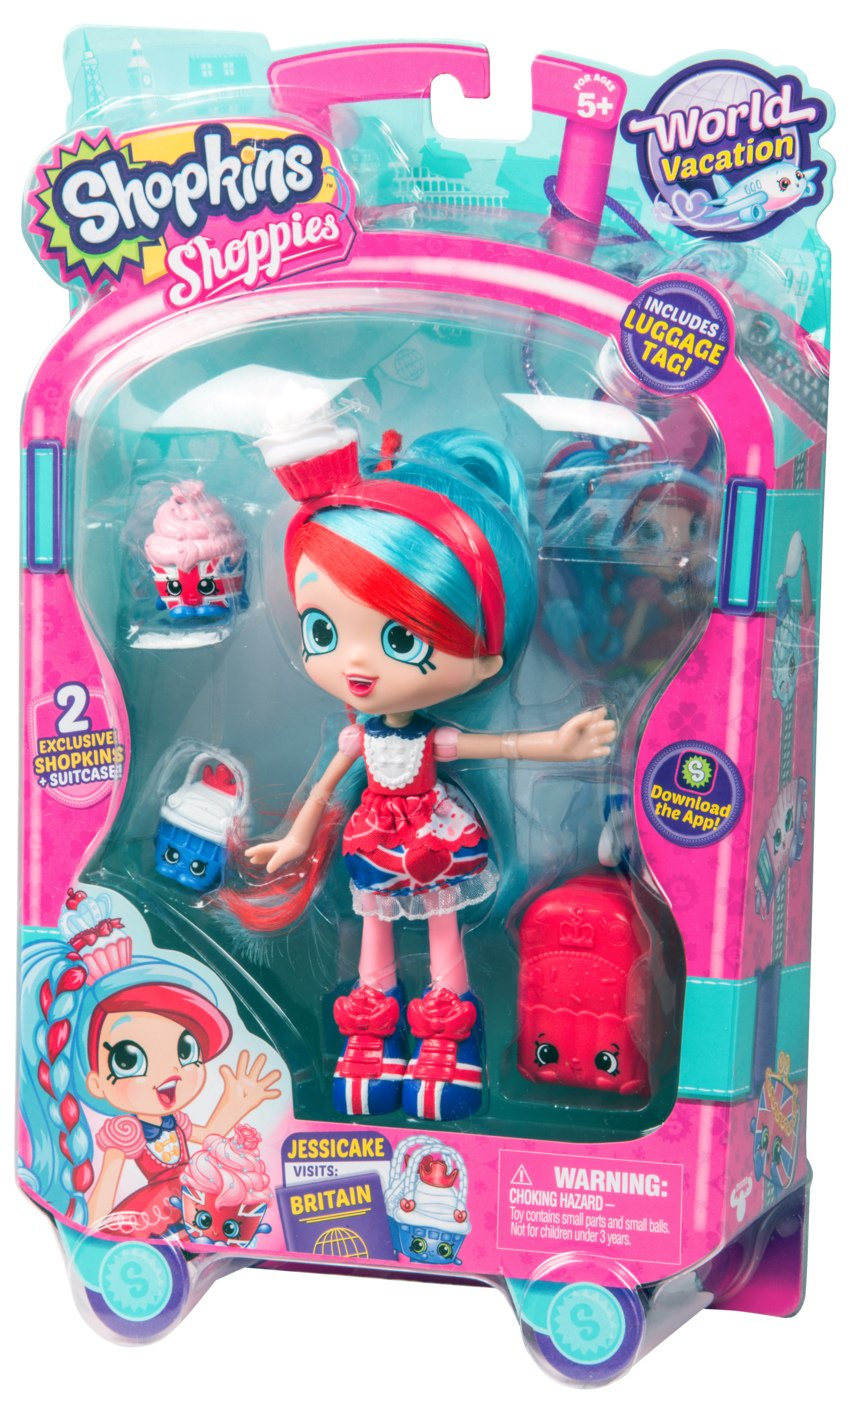 Shopkins World Vacation (Europe) Shoppies Doll - Jessicake: Amazon ...